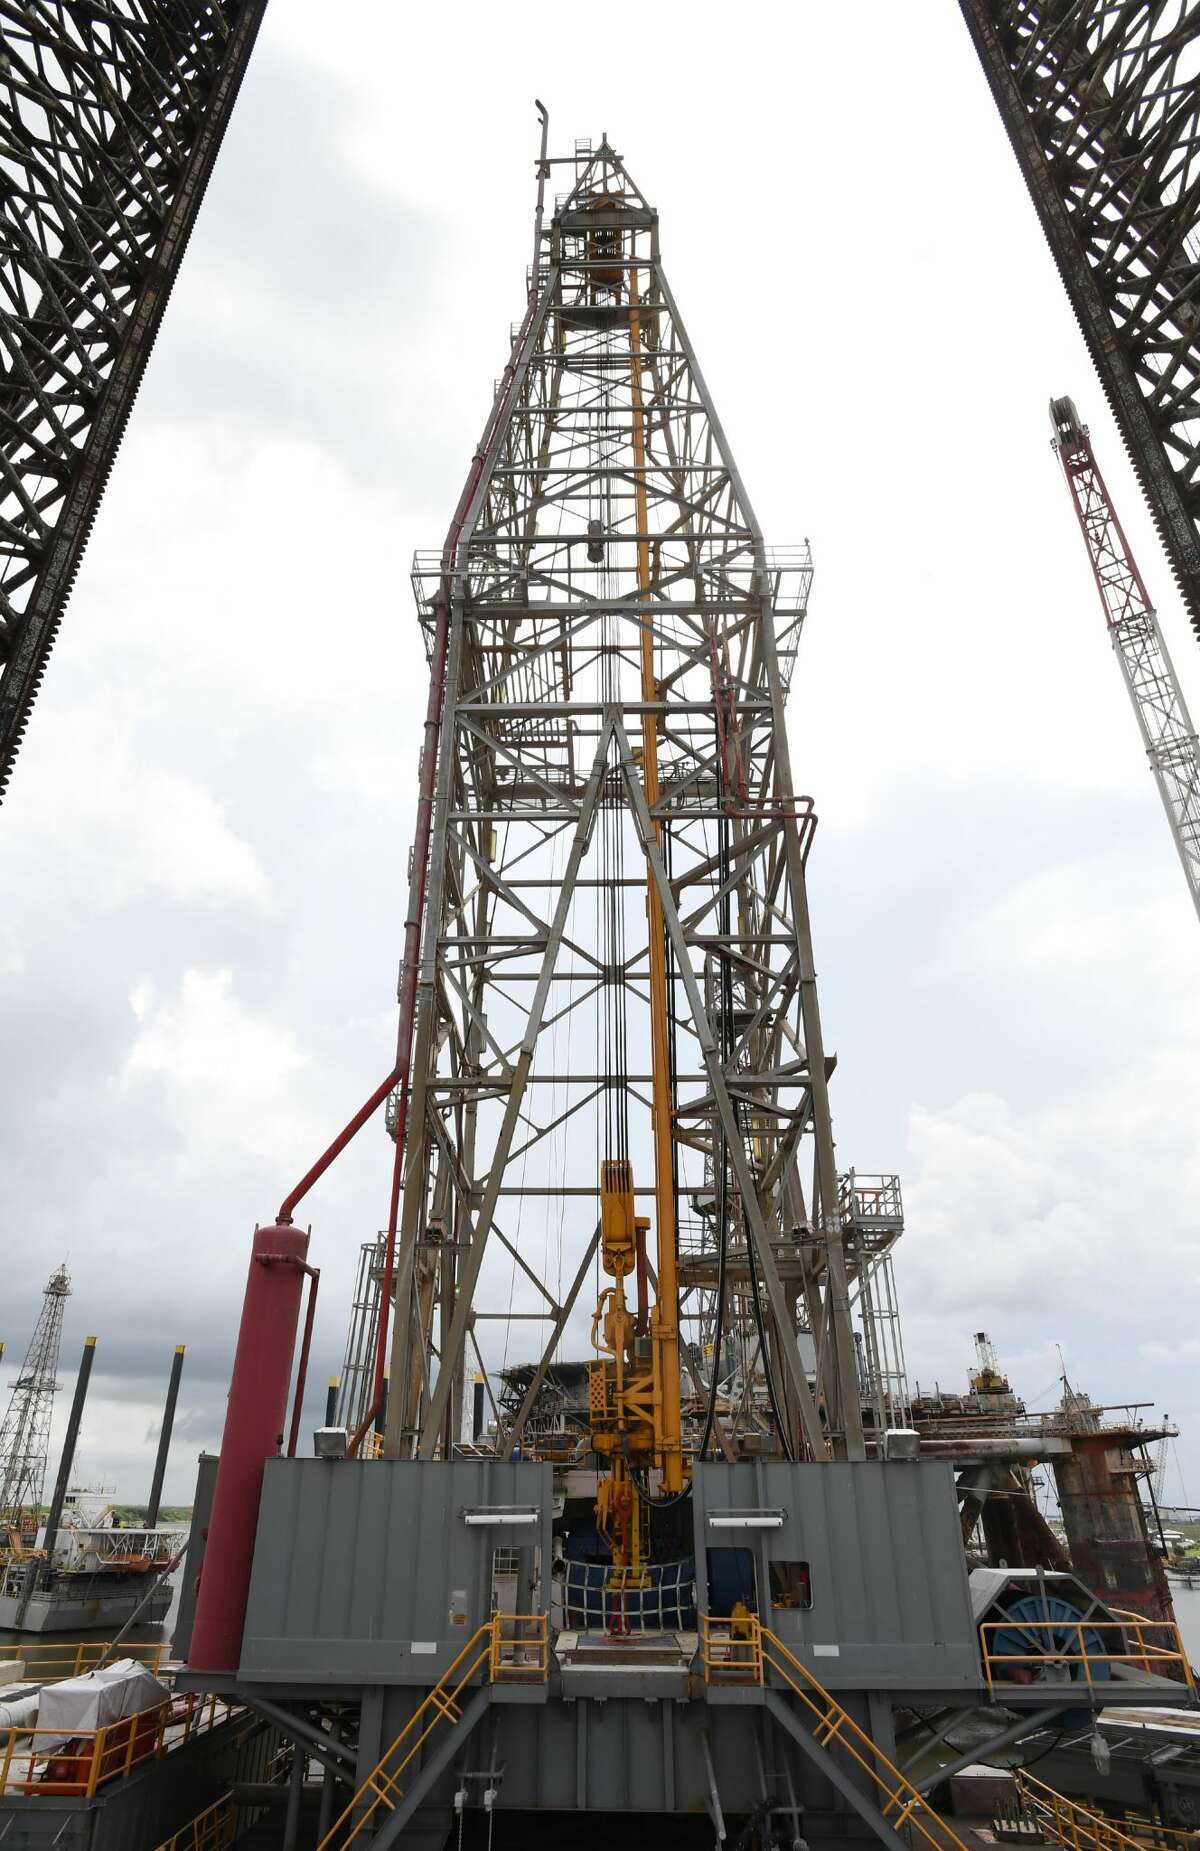 The Atlantis 7 drilling platform in Sabine Pass on Friday. With a 25,000 foot drilling reach, the platform is undergoing final inspections and expected to return to operation soon. As the barrel cost of oil has increased in the past 18 months, the demand for workers has increased in the south Jefferson County community. Photo taken Friday, 9/7/18